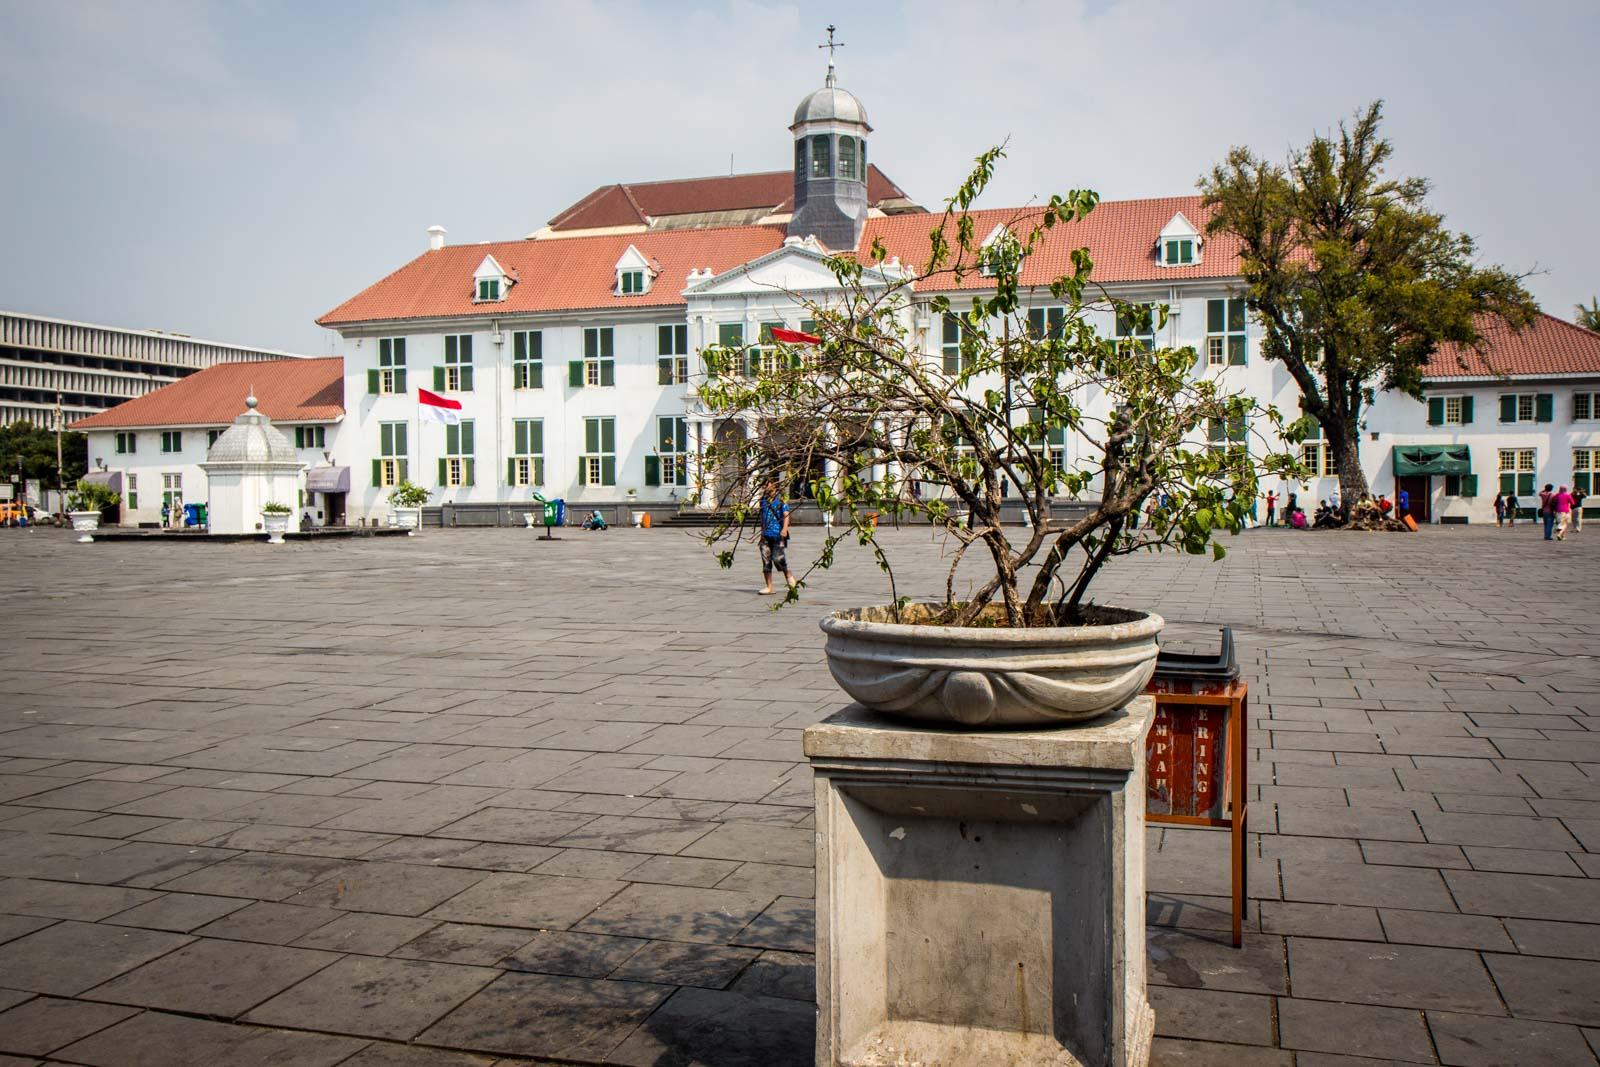 What to see around Kota Tua, Jakarta Old Town, Indonesia